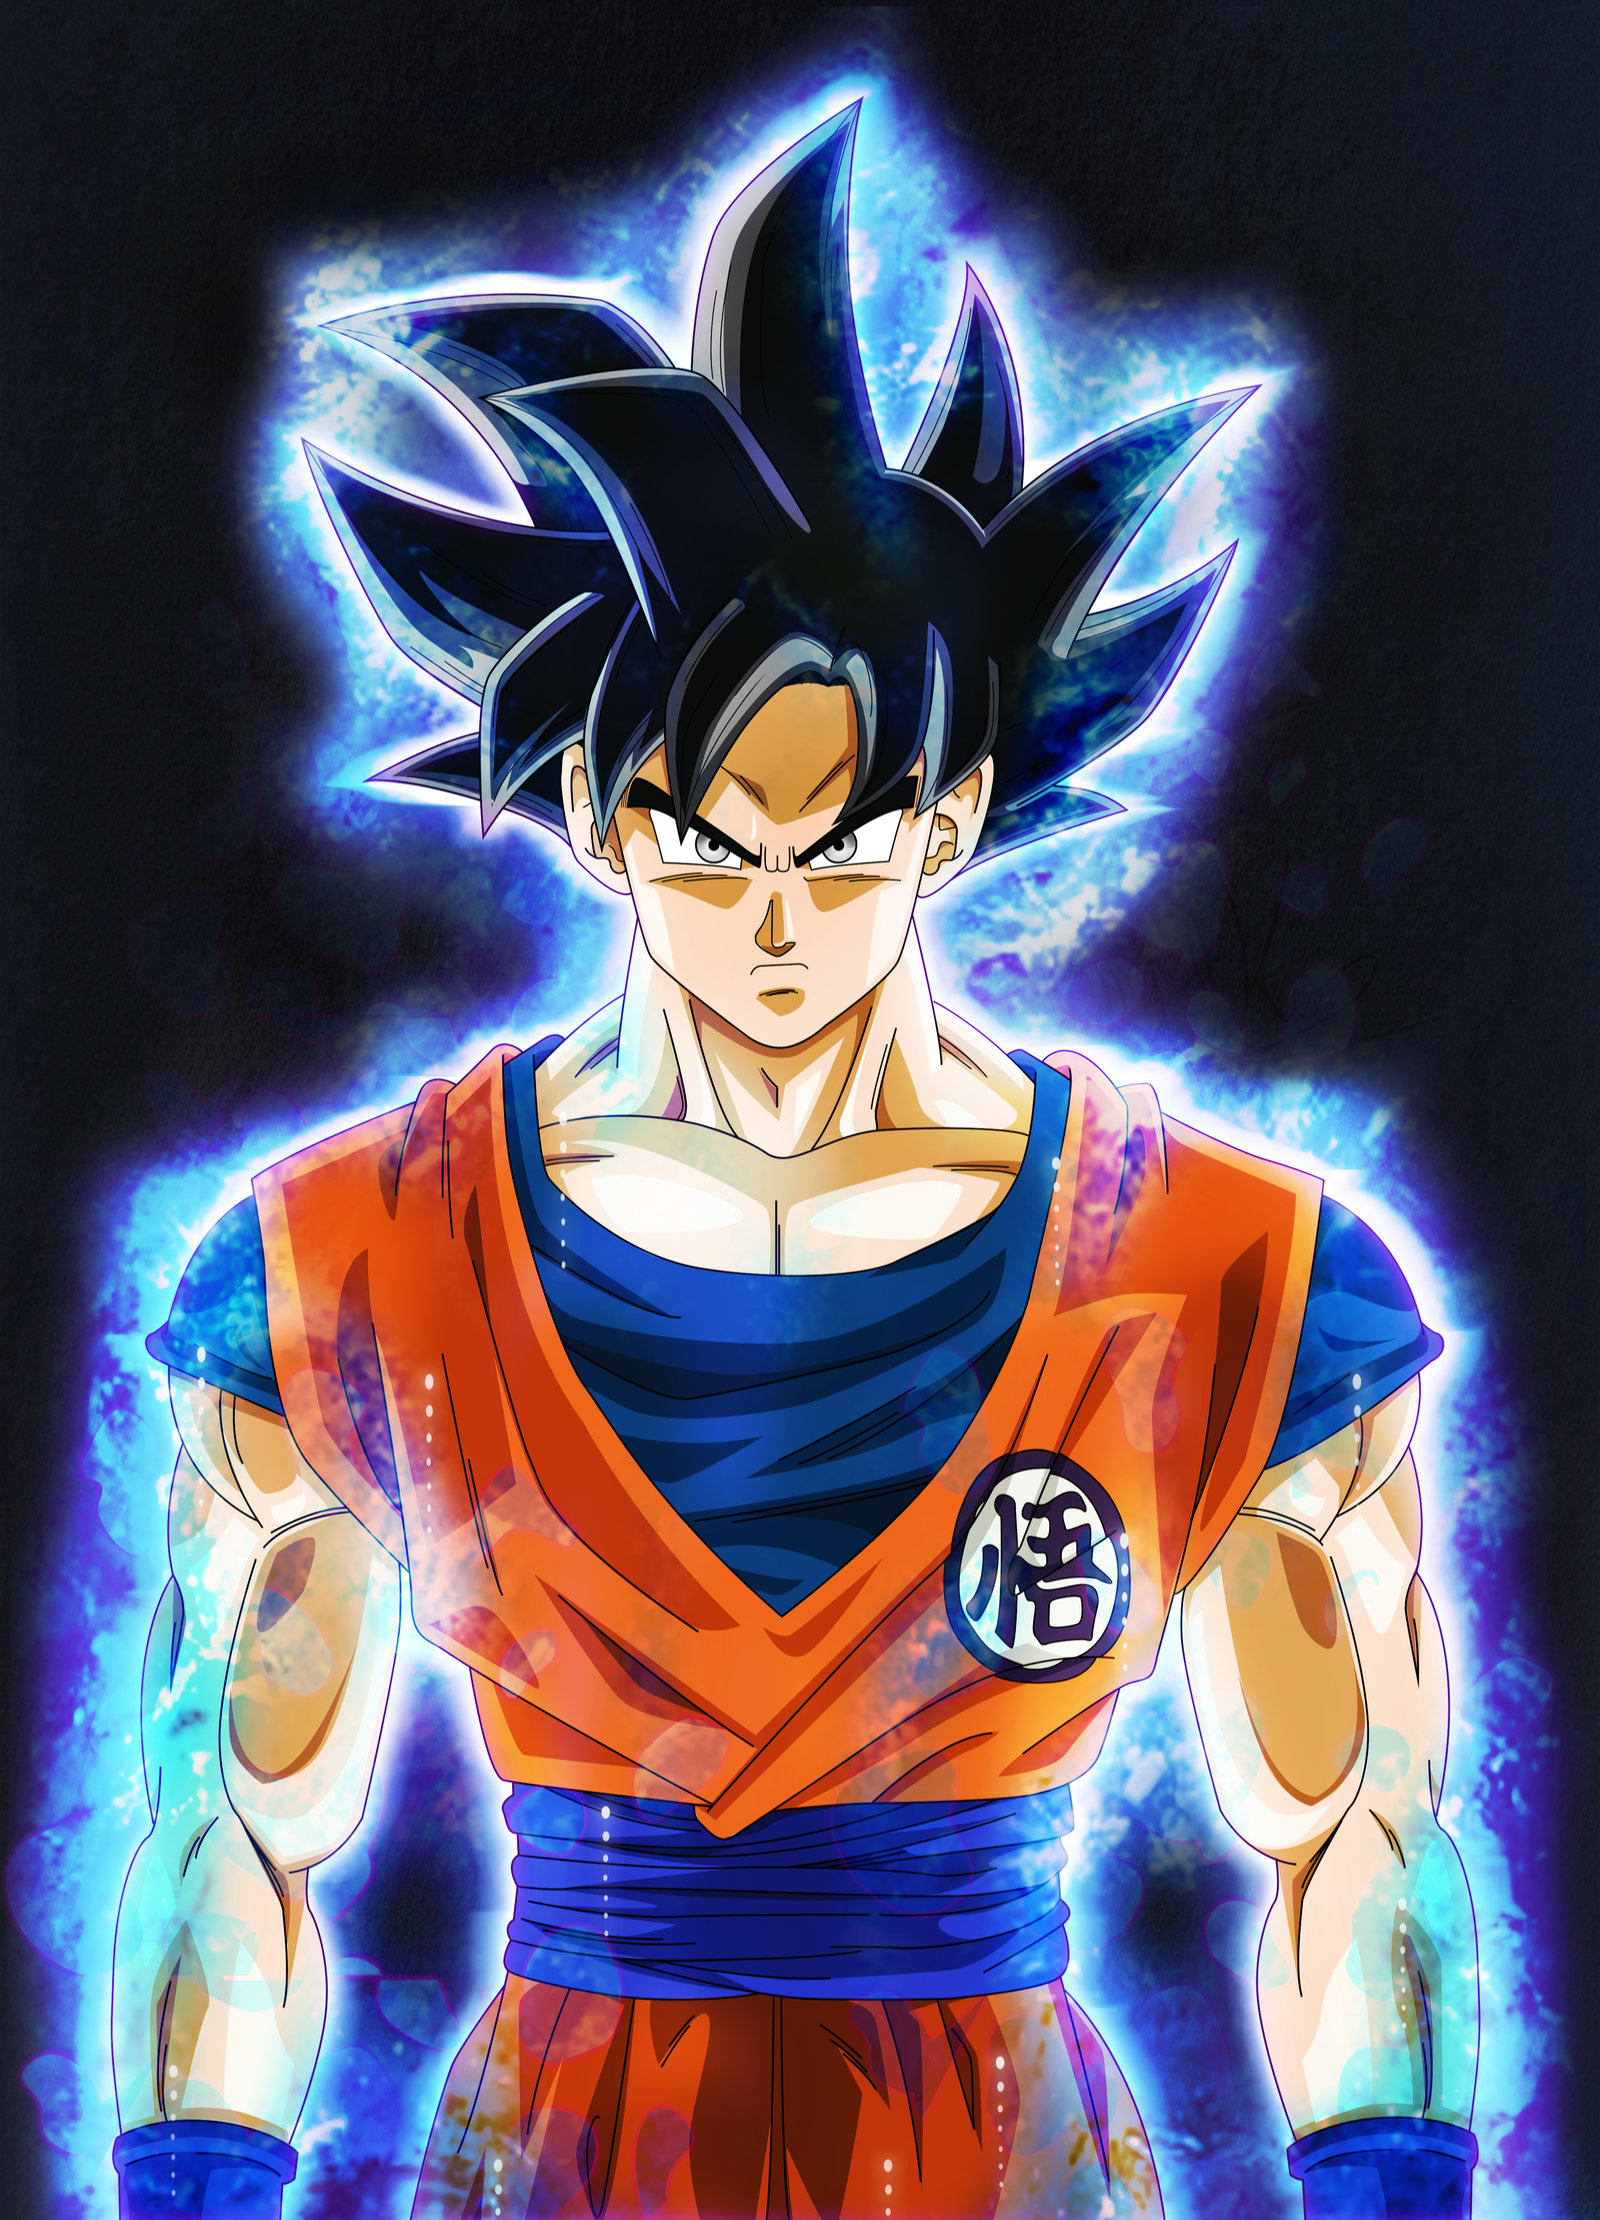 Goku   Ultra Instinct   Migatte no Gokui   DBS2018 by 1600x2220